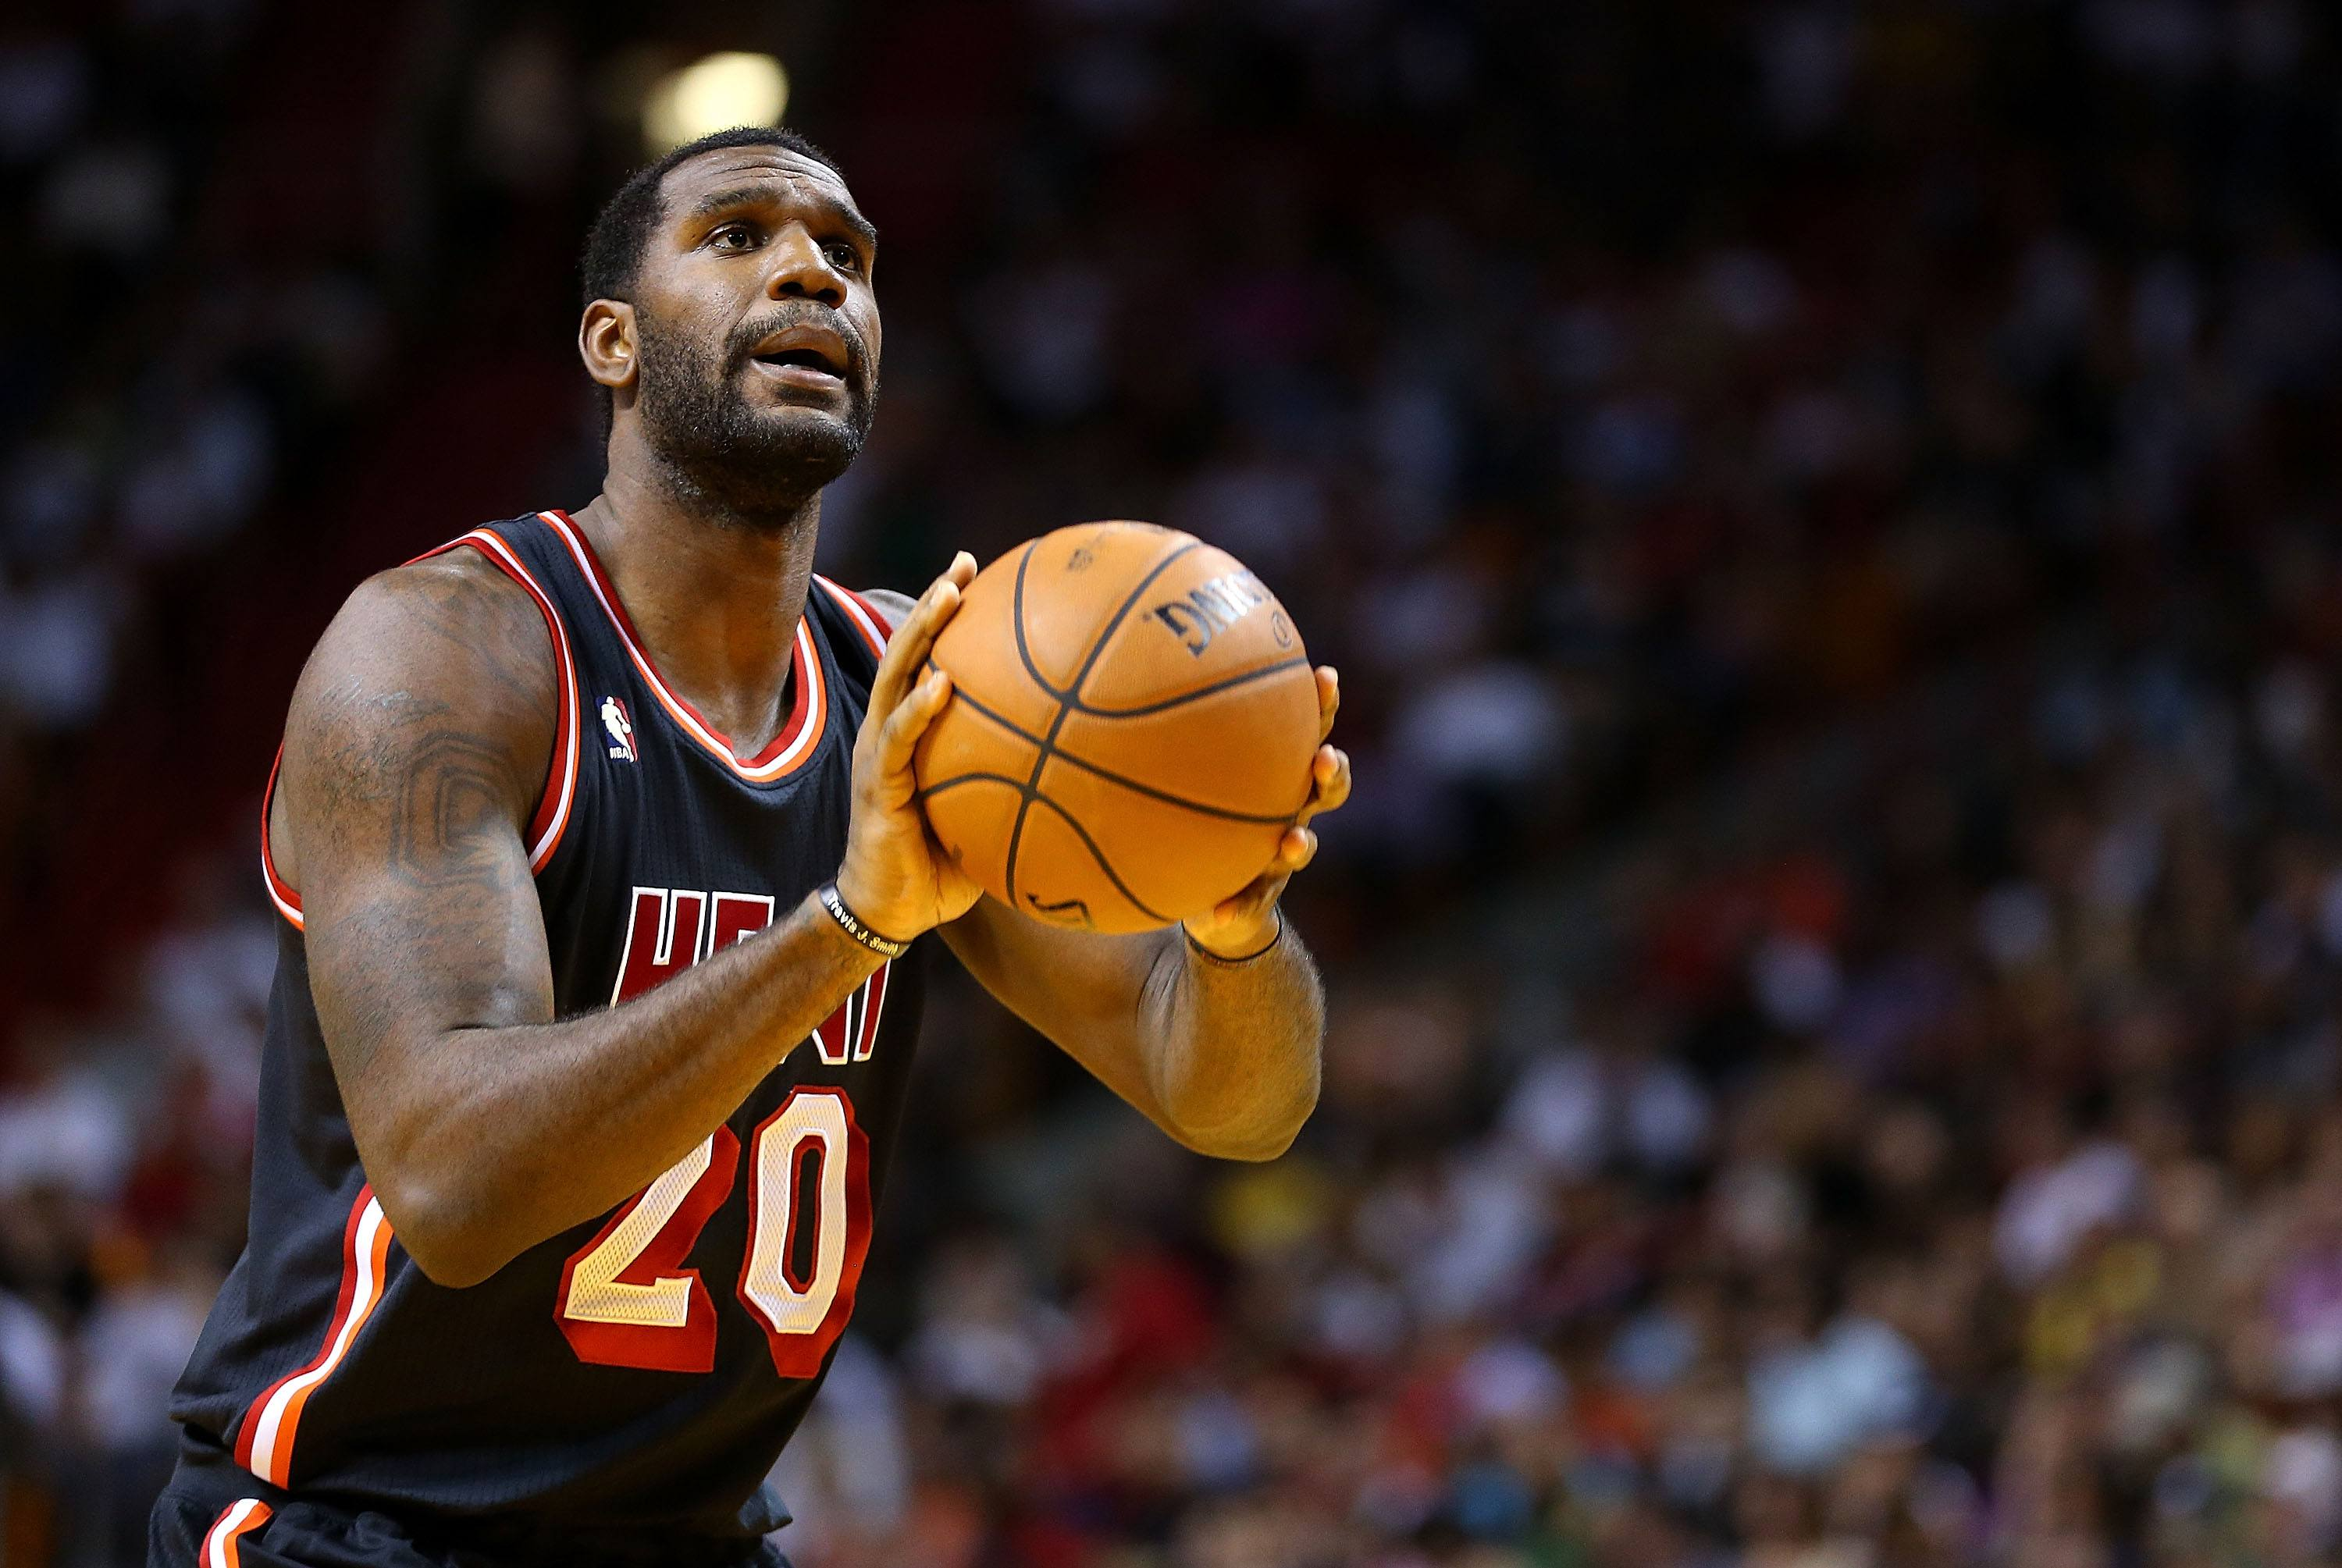 Greg Oden, whose career was cut short by injuries